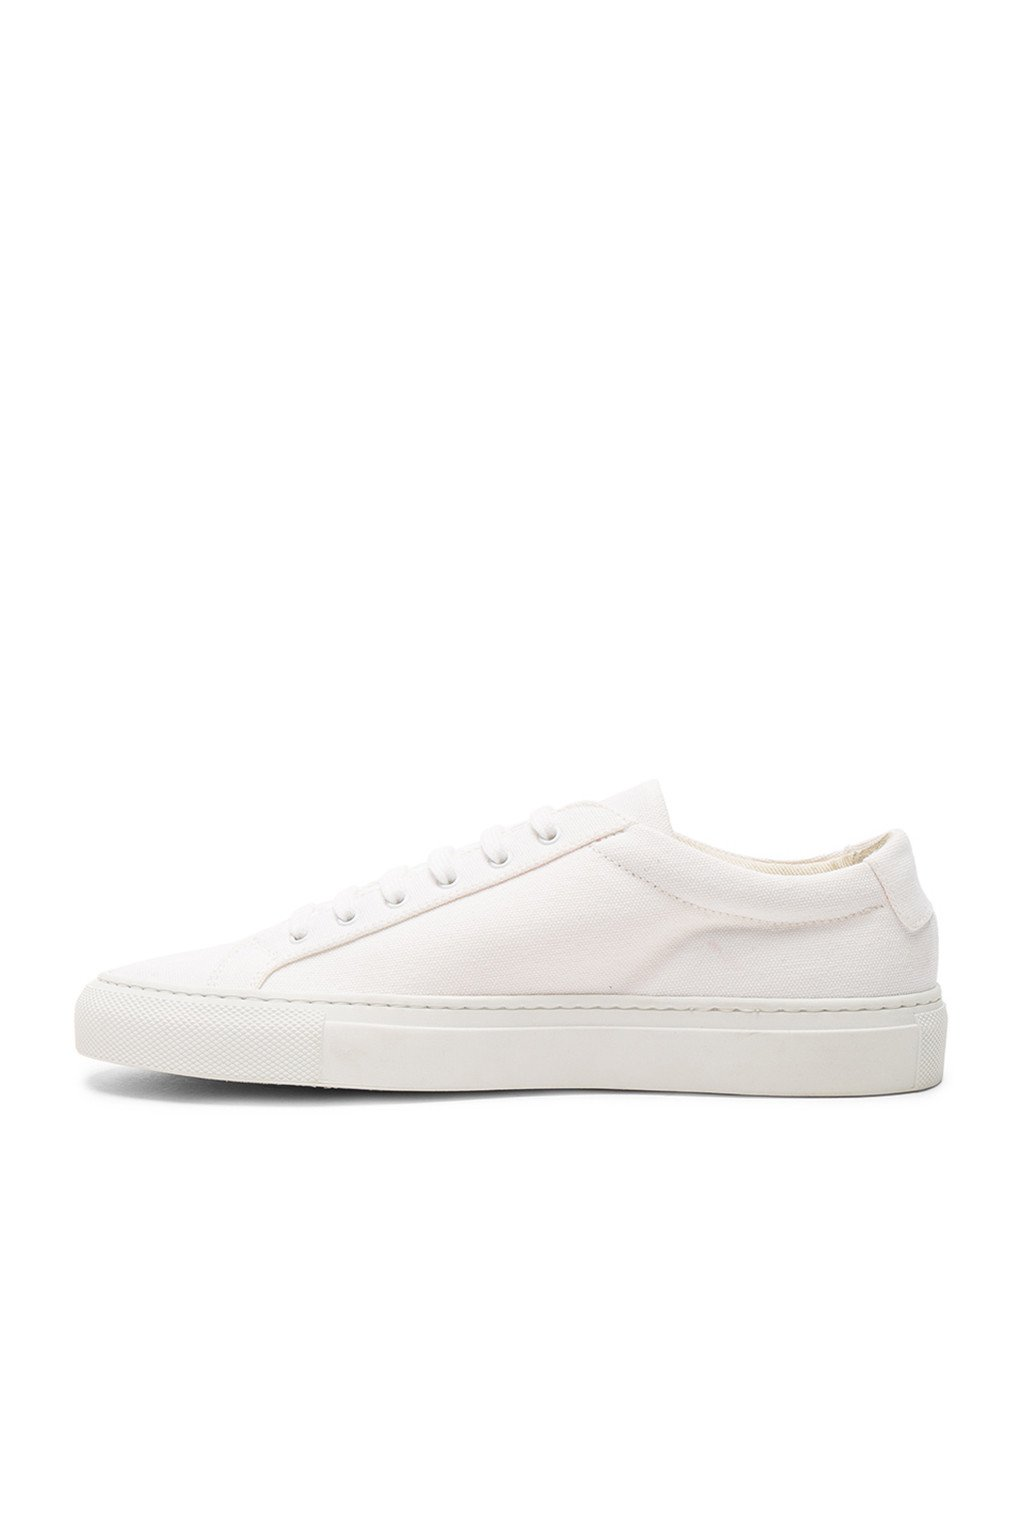 common projects canvas original achilles sneaker garmentory. Black Bedroom Furniture Sets. Home Design Ideas